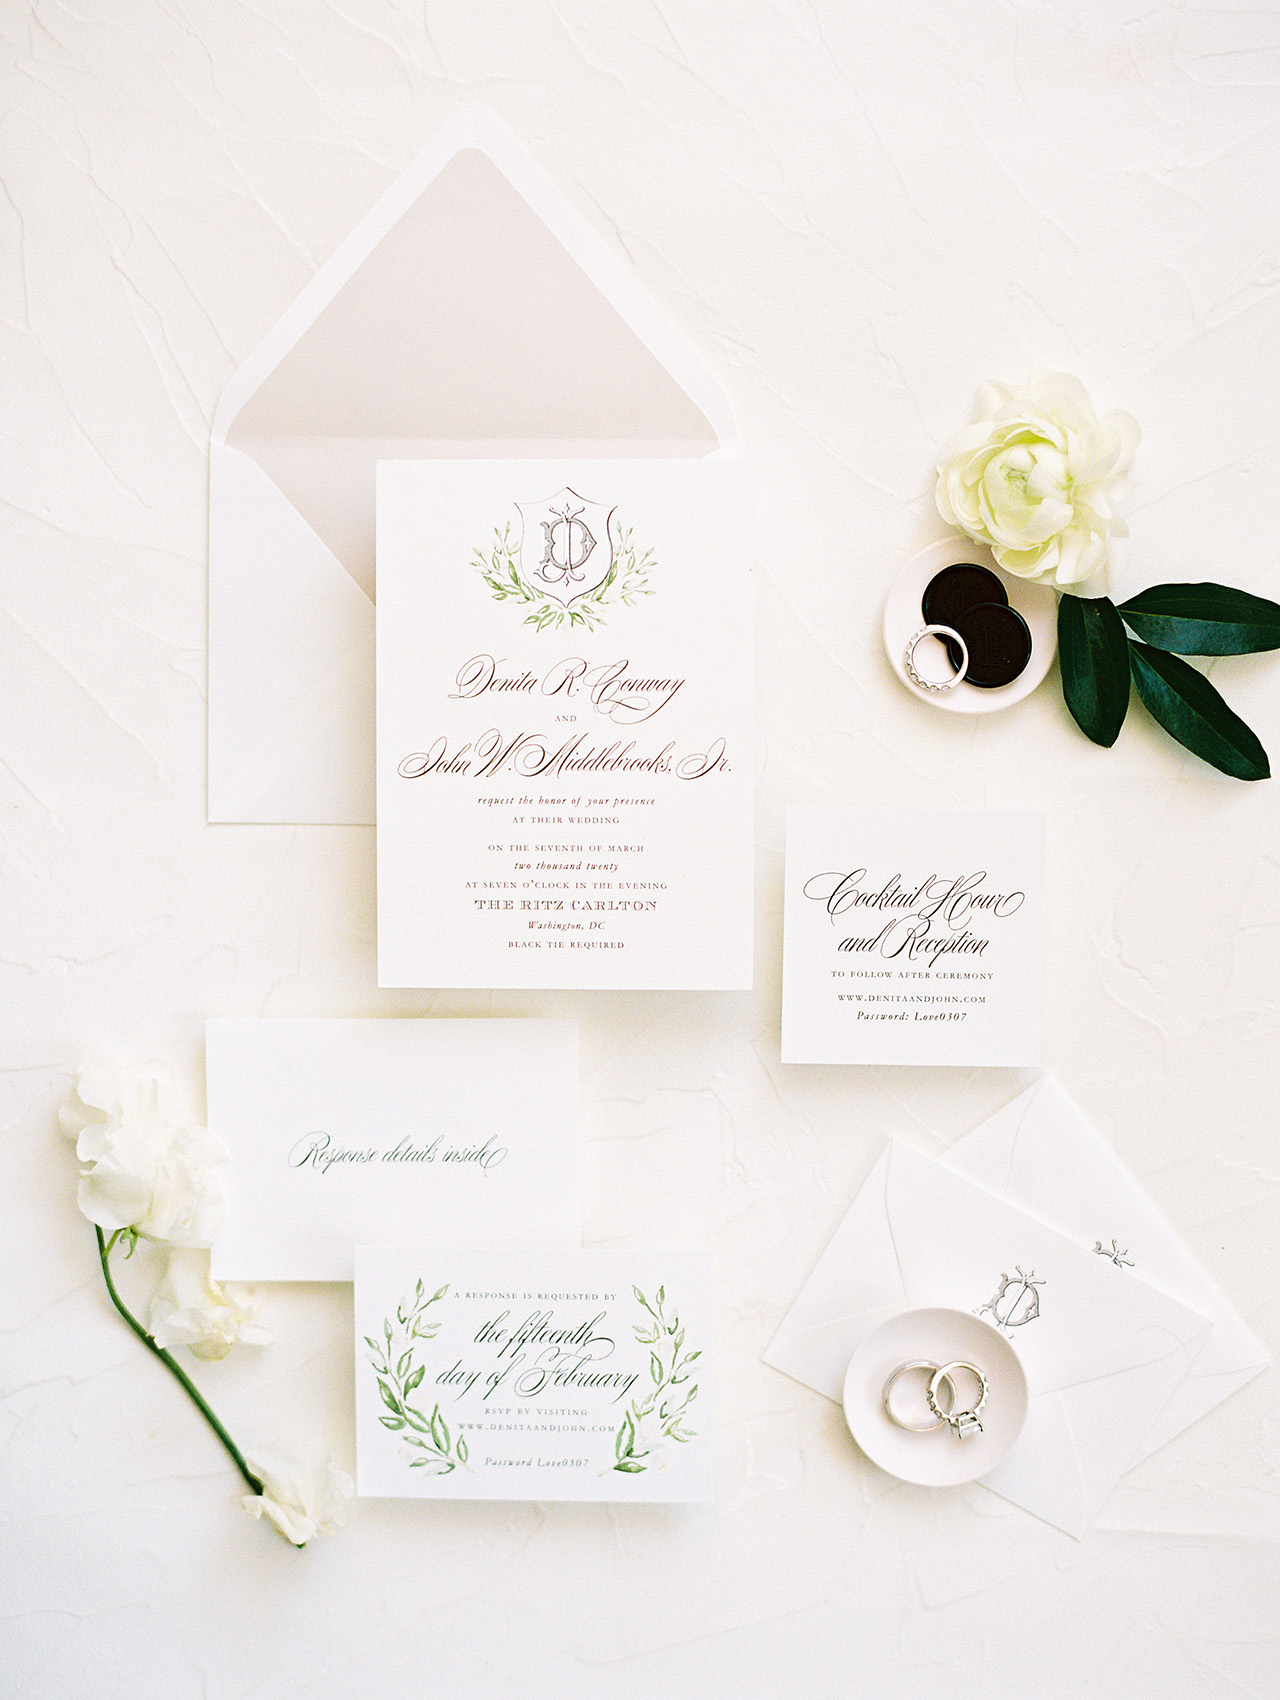 denita john wedding invites